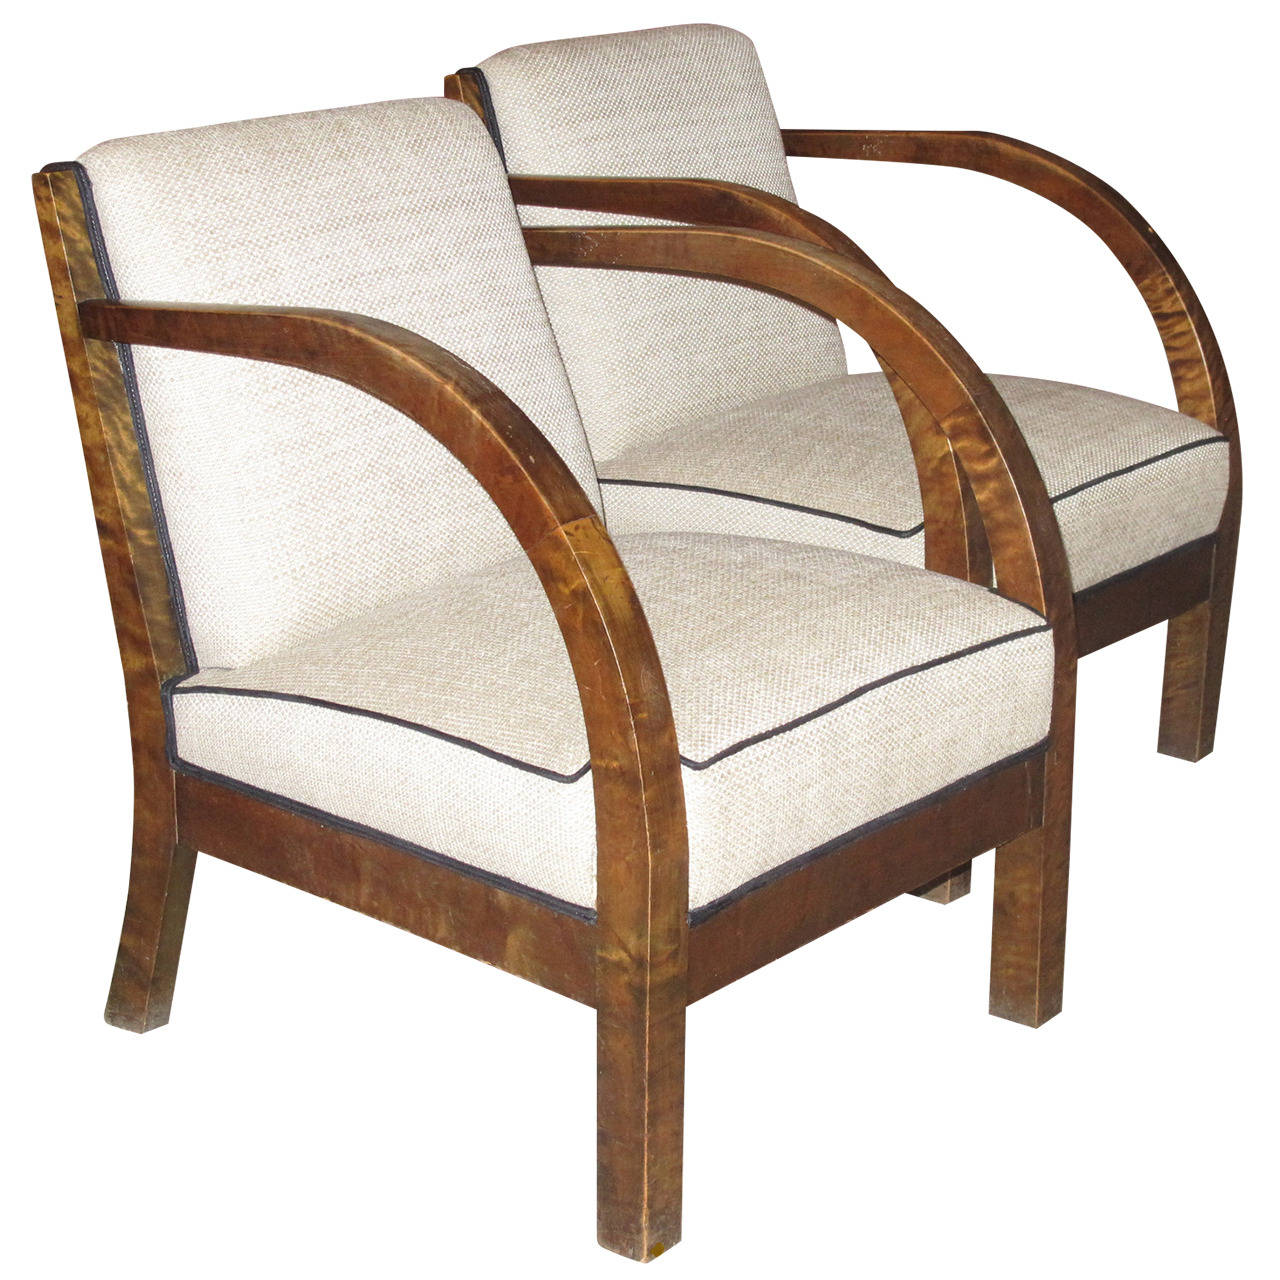 Lovely Pair Of Danish 1930s Birch Wood Armchairs With Curved Arms For Sale